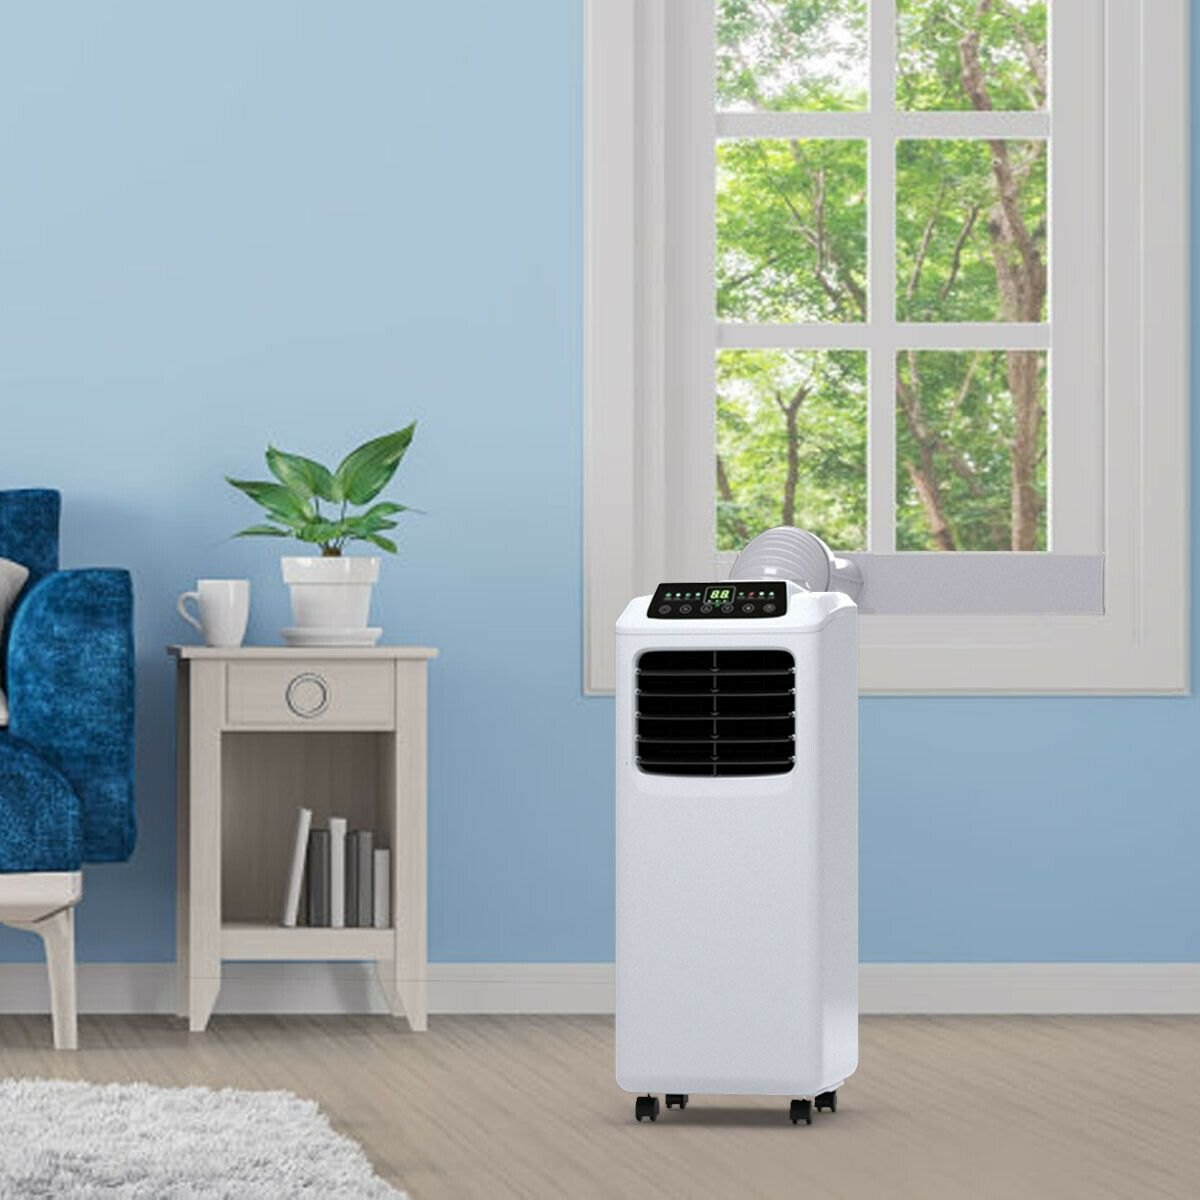 8000 BTU Portable Air Conditioner with Window Kit